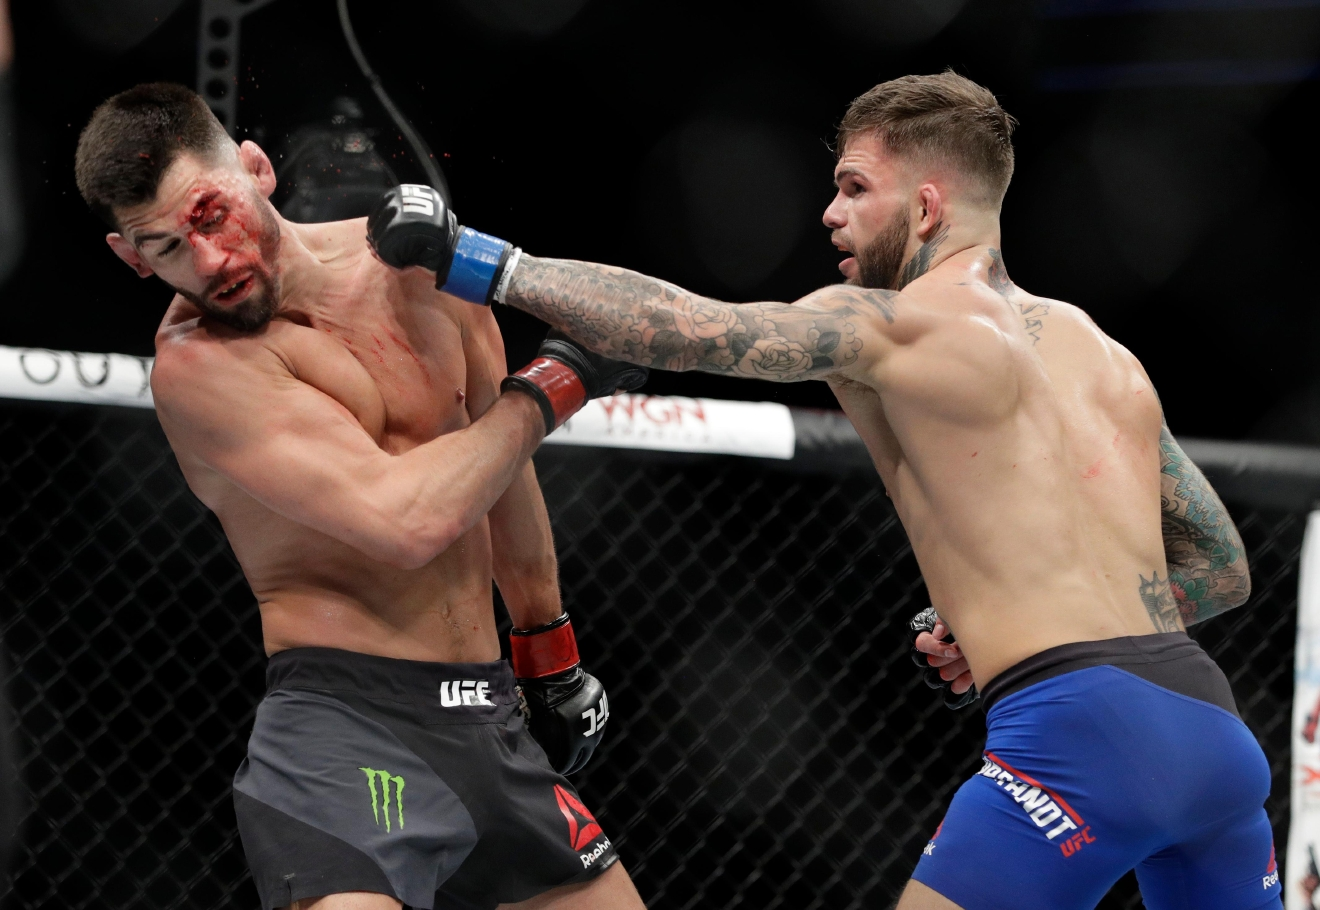 Cody Garbrandt, right, throws a punch to Dominick Cruz during a bantamweight championship mixed martial arts bout at UFC 207, Friday, Dec. 30, 2016, in Las Vegas. (AP Photo/John Locher)